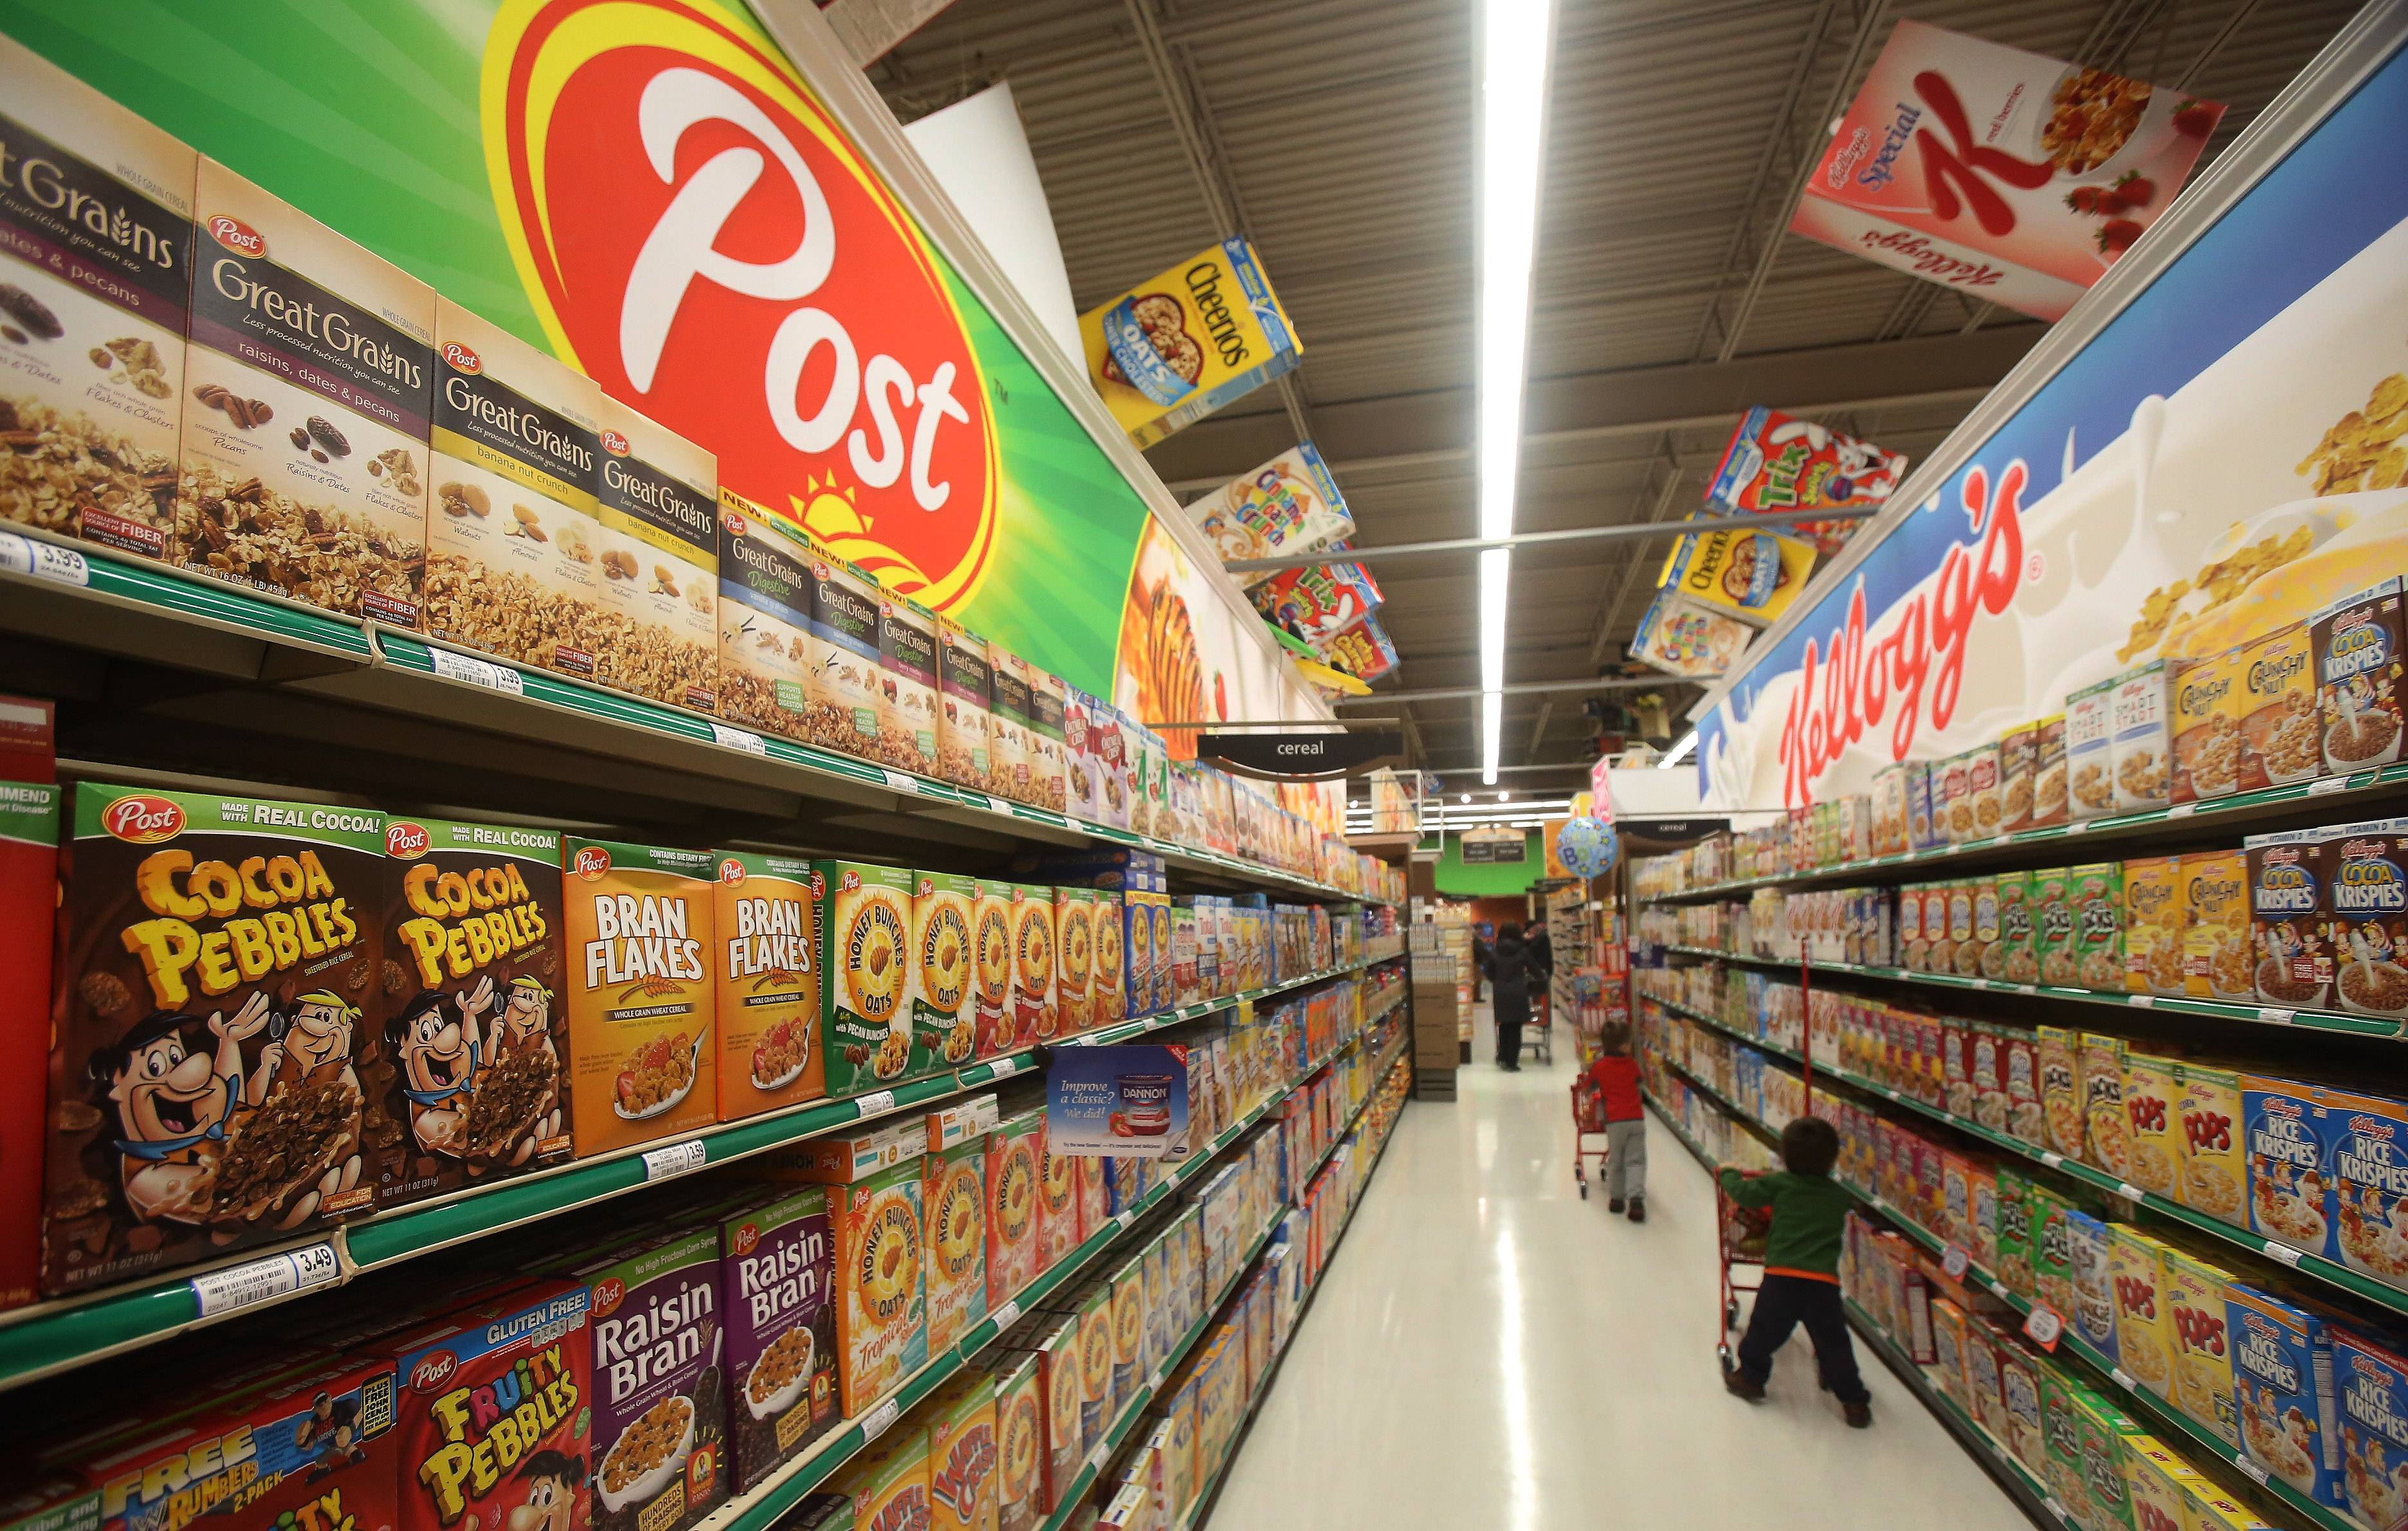 Children walk down the cereal aisle looking at the big signs.